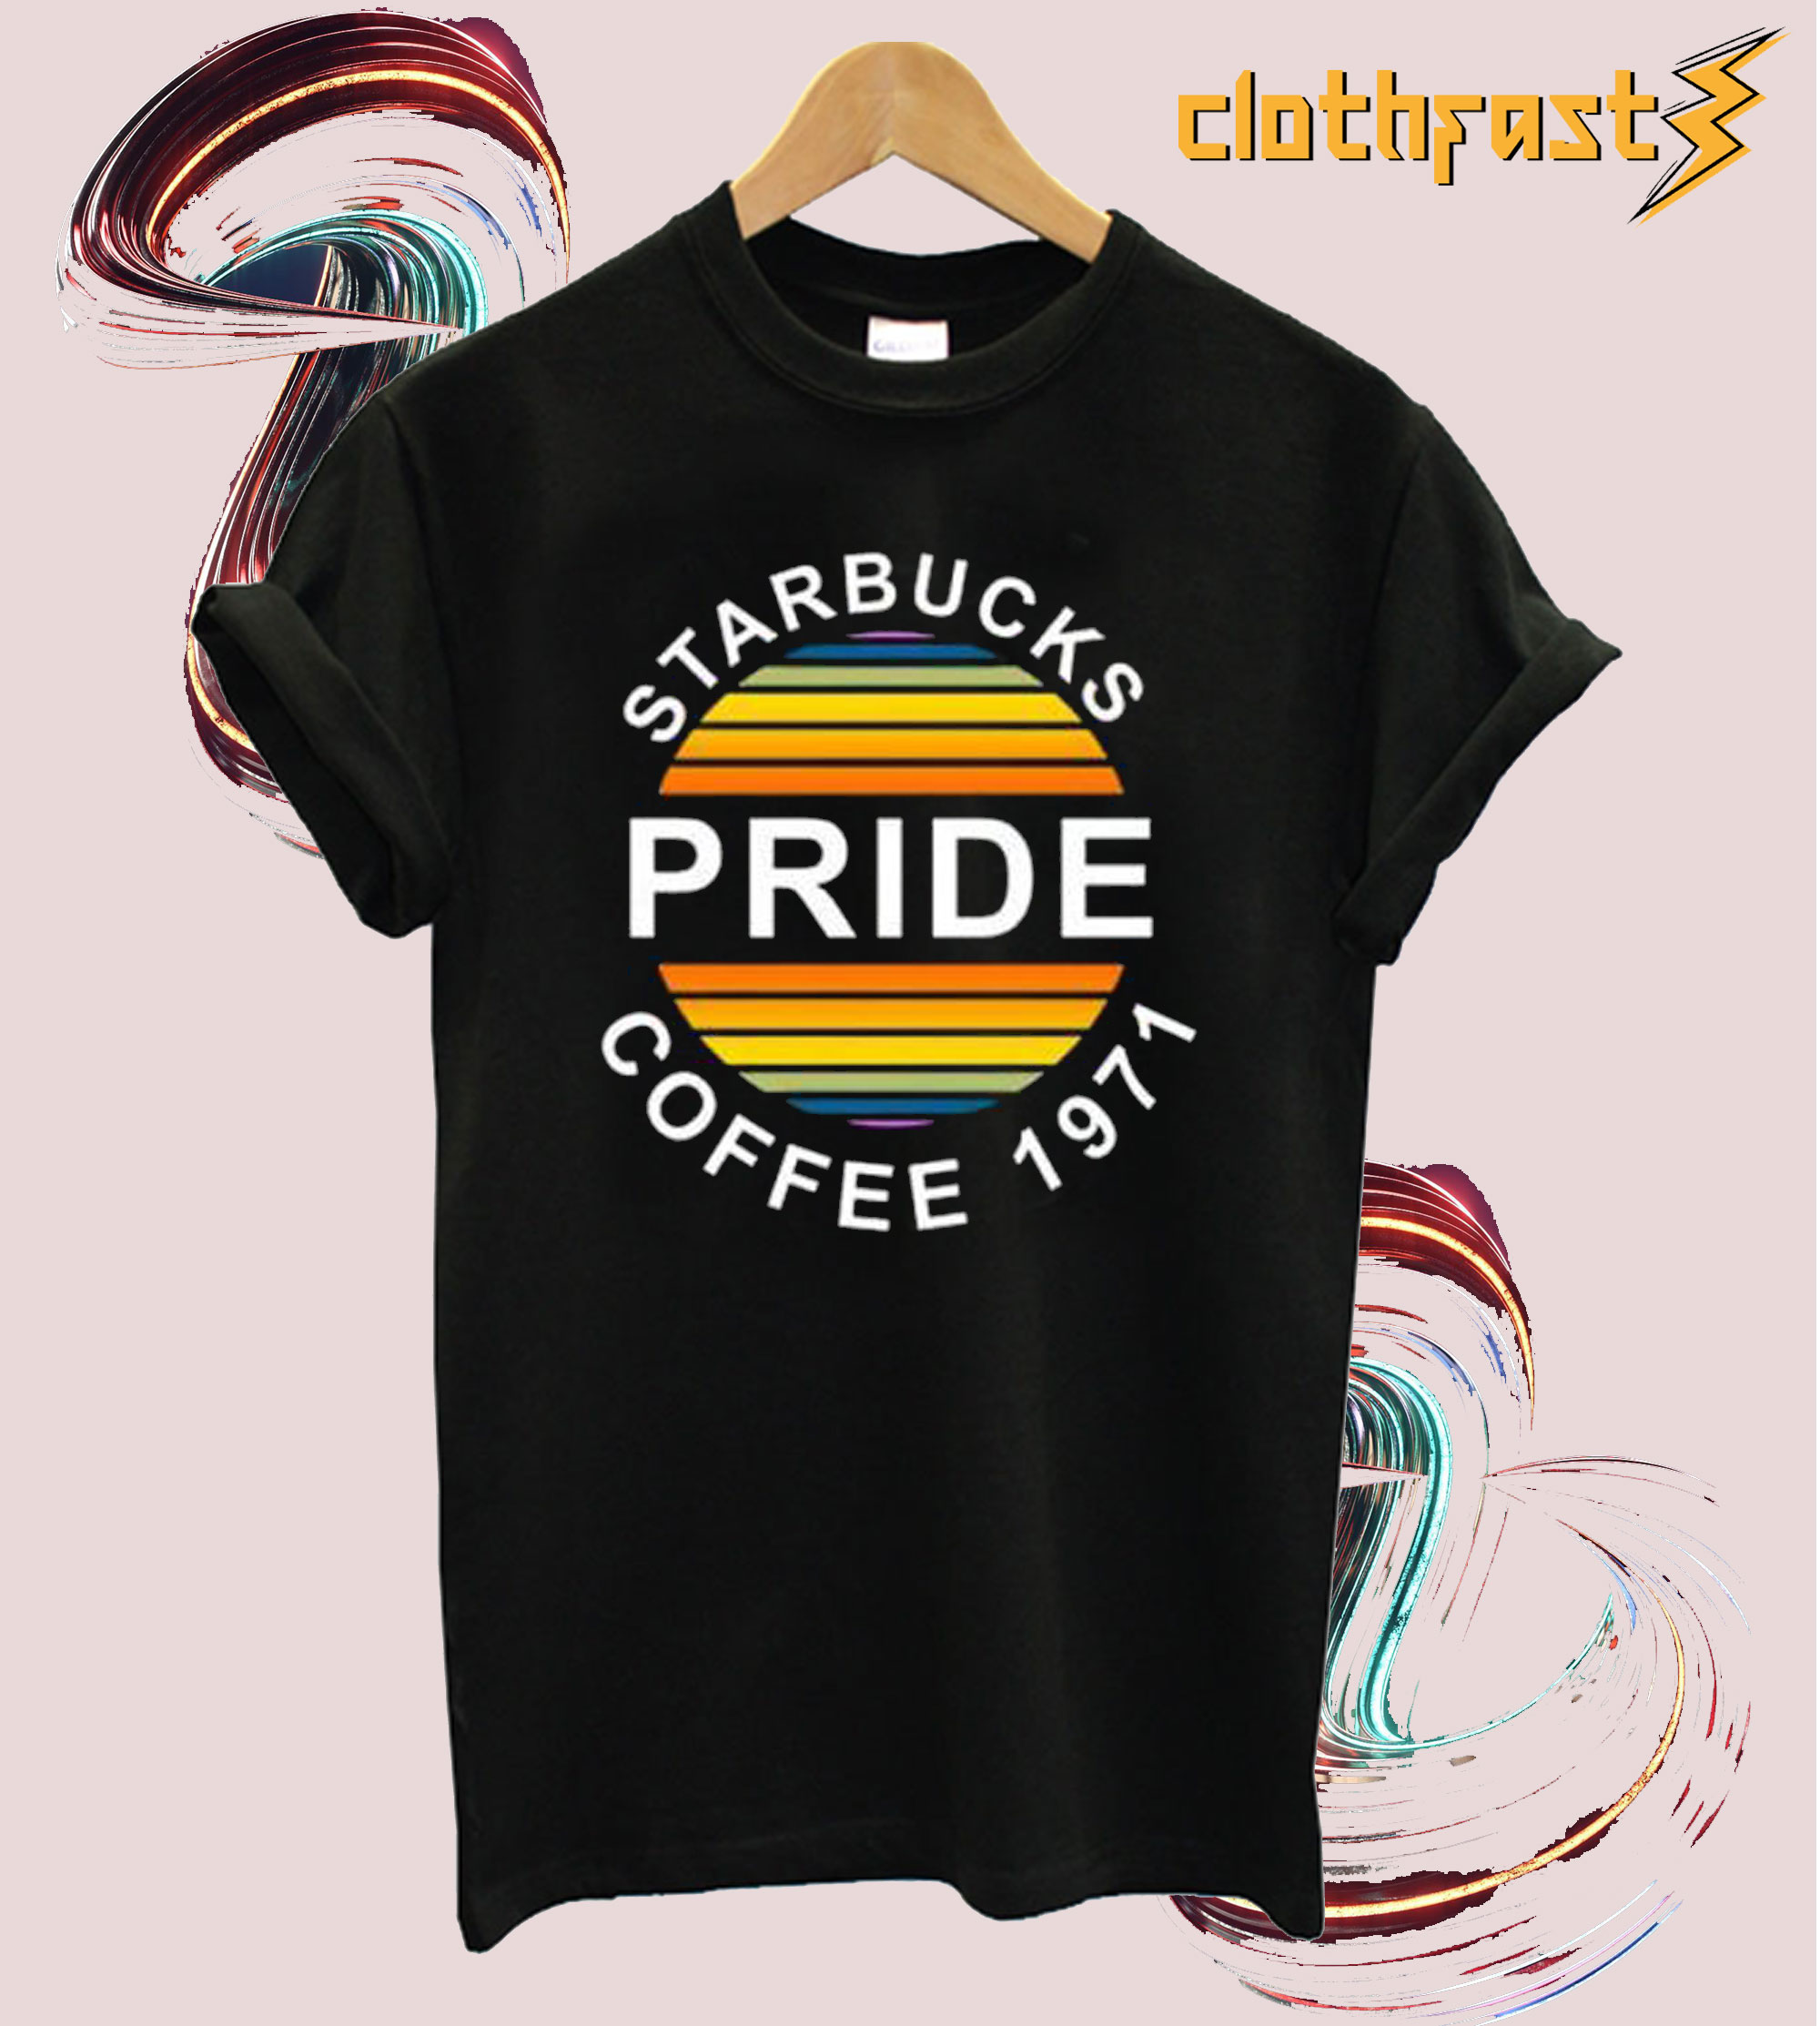 Starbucks Pride Coffe 1971 T-shirt.